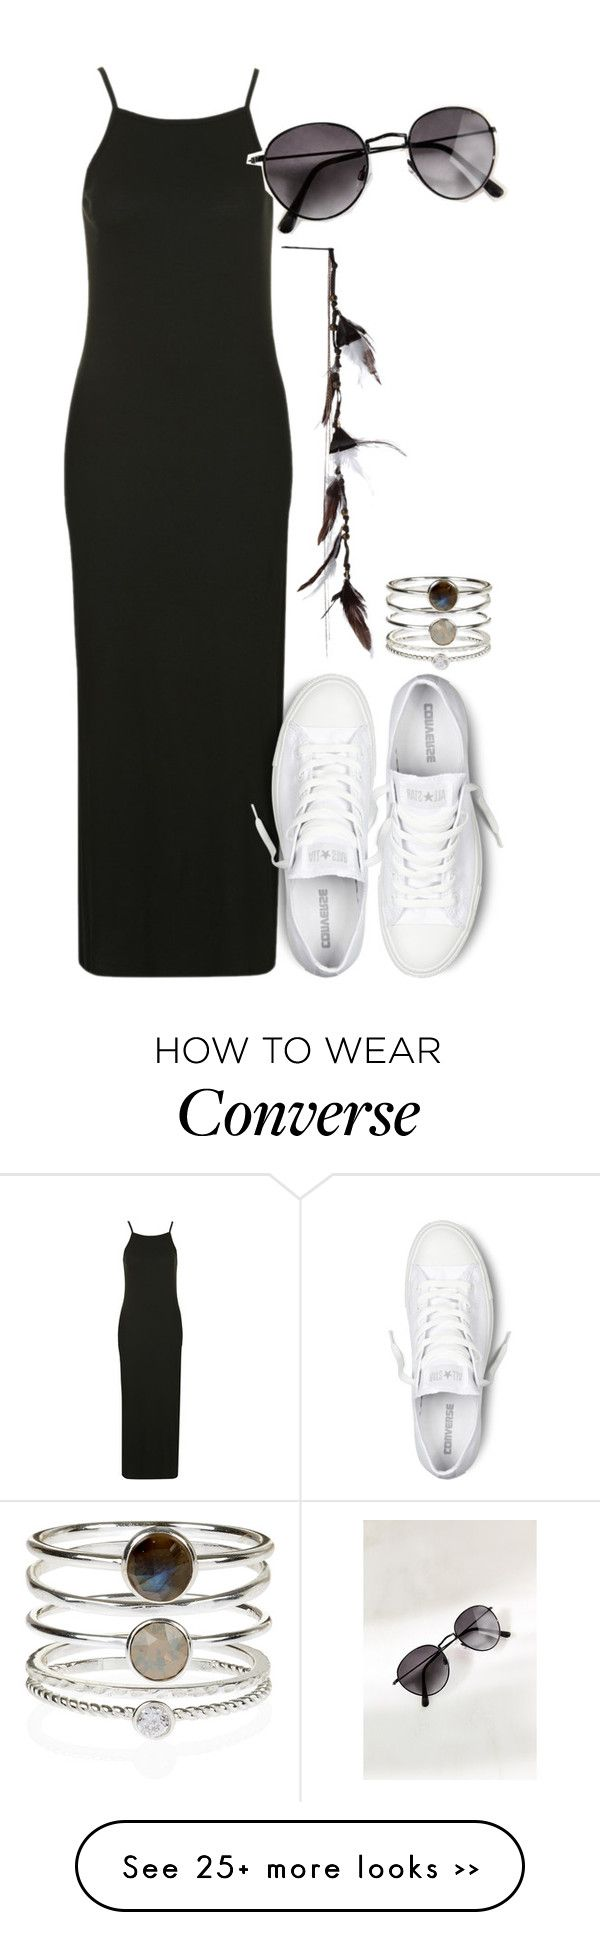 """perrie insp"" by littlemixmakeup on Polyvore featuring Topshop, Converse and Accessorize"